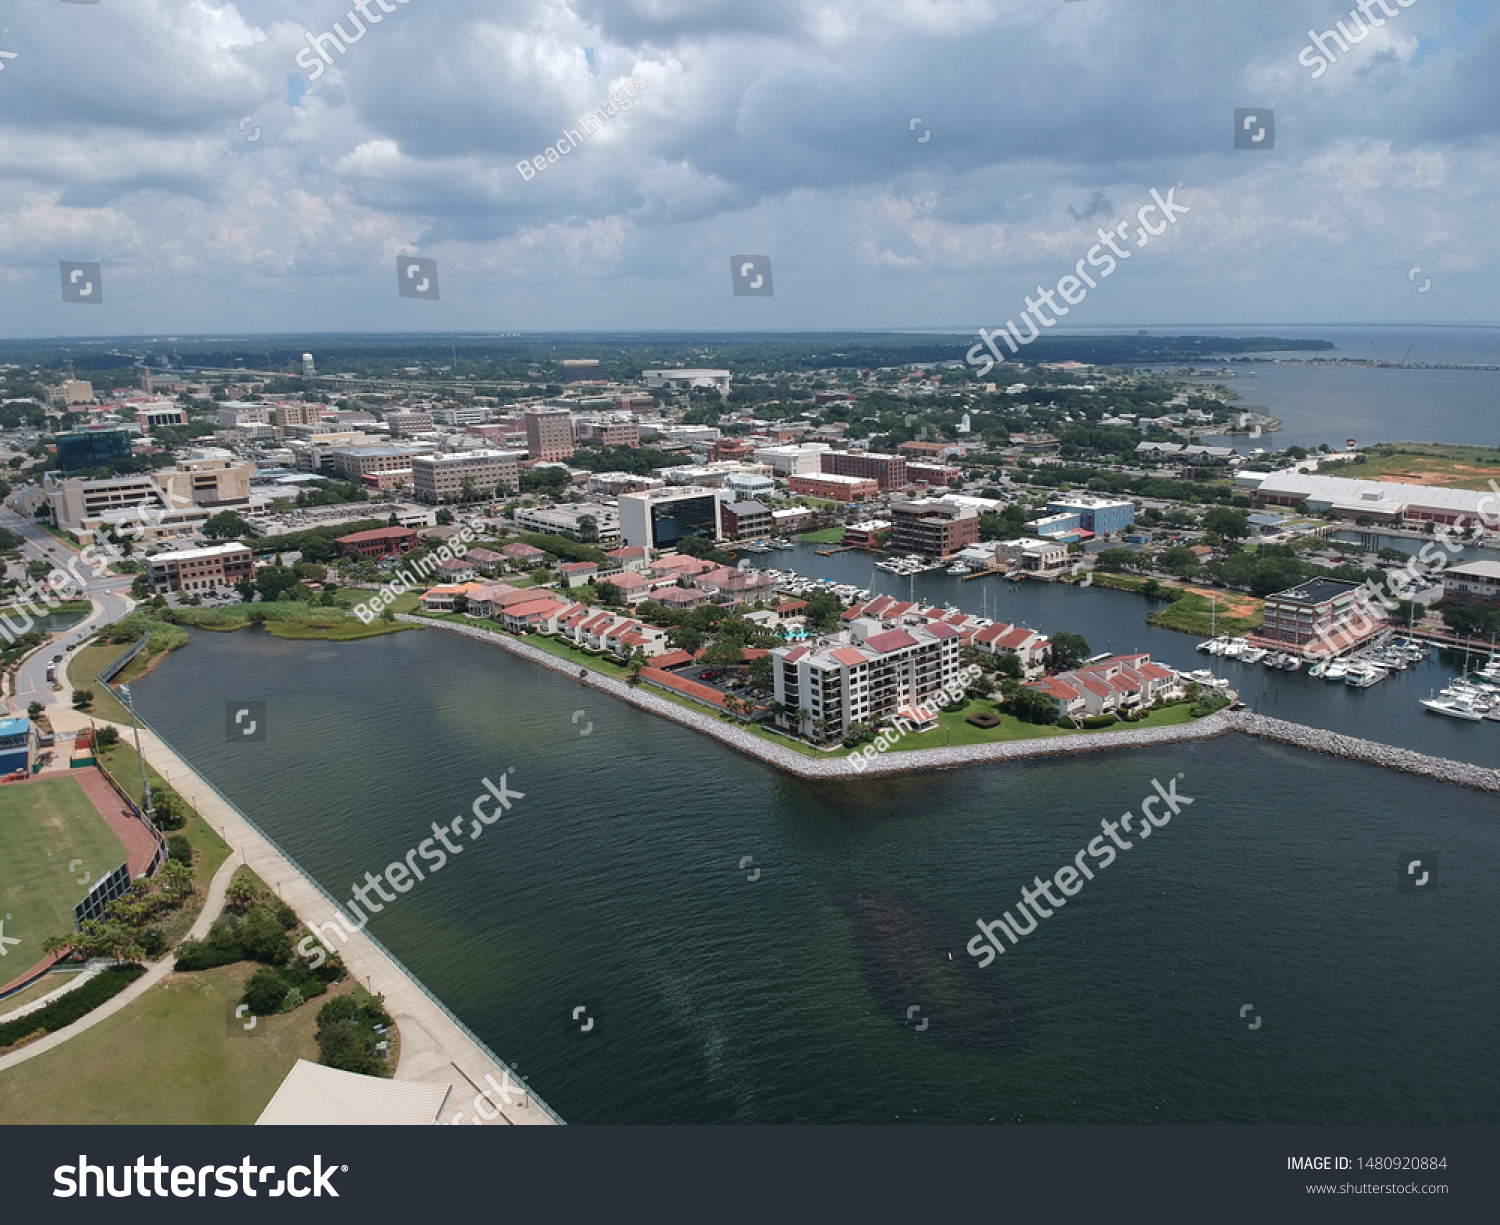 View over downtown Pensacola this summer! #1480920884